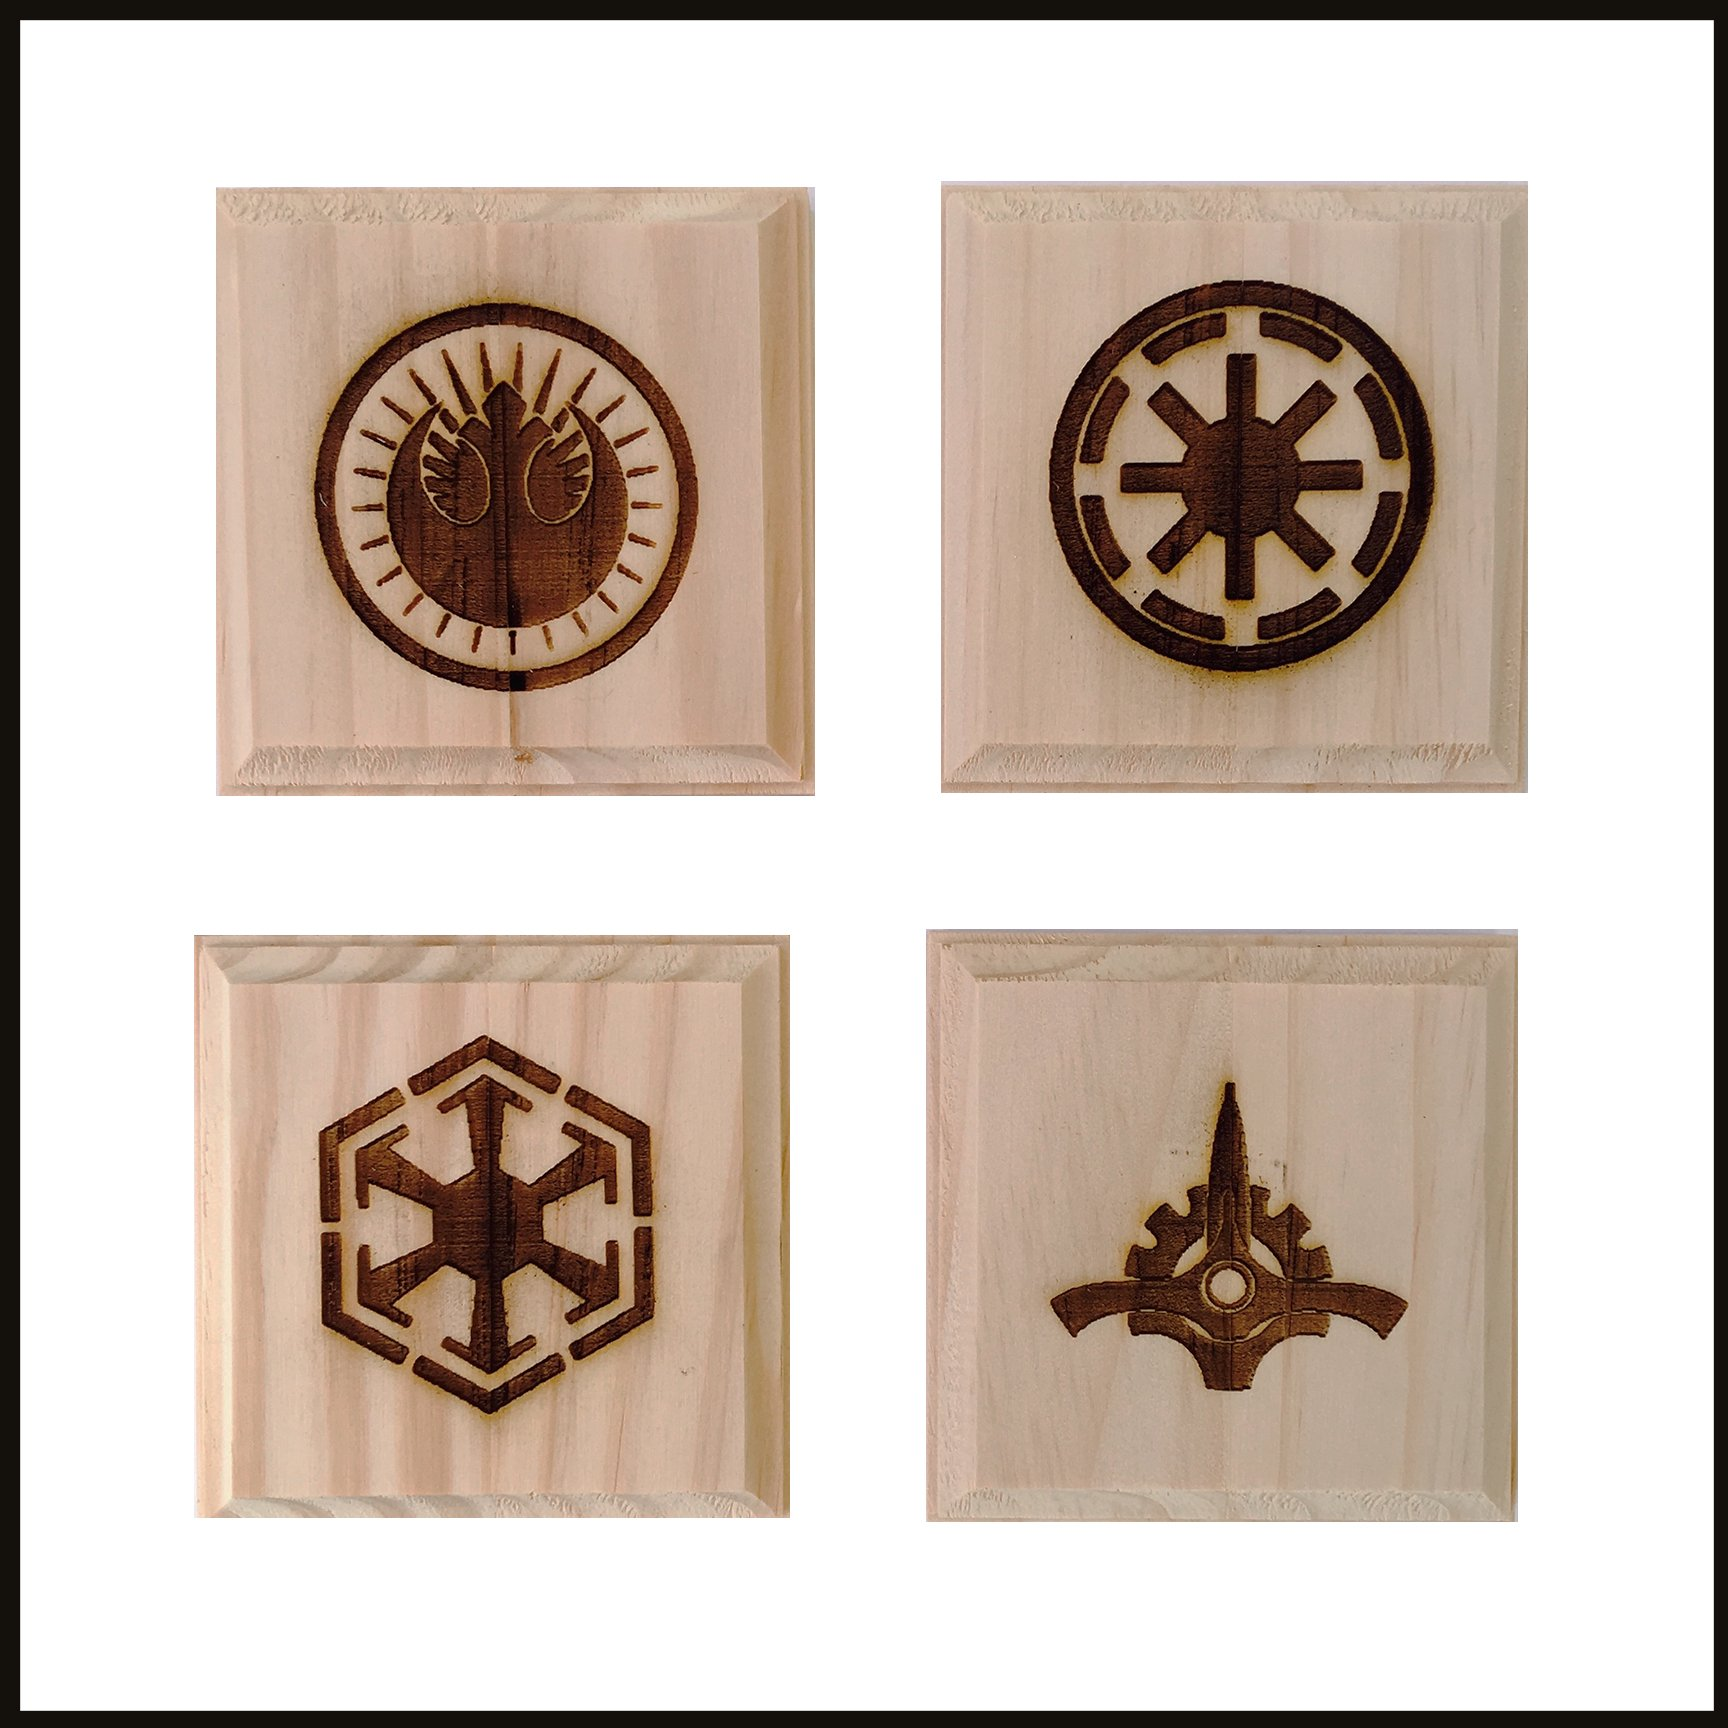 Star Wars Coasters (By Brindle Designs): Permanent engraved gift set of 4 wood coasters: Galactic Republic, Galactic Senate, New Jedi Order, Old Republic